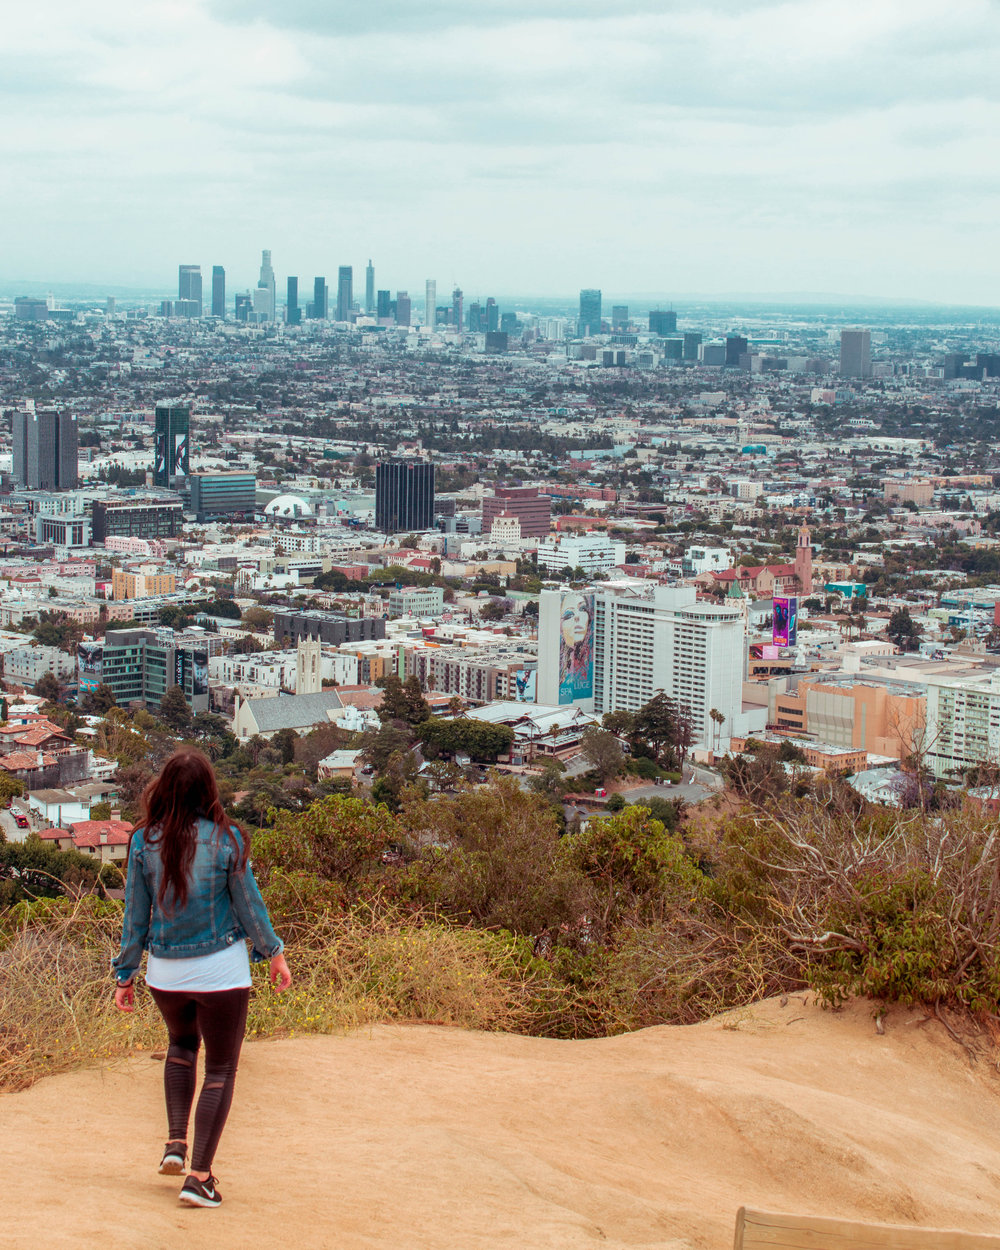 11 Tips for Living your Best Life at goseekexplore.com | Go Seek Explore travel blog | PHOTO: Runyon Canyon in Hollywood/Los Angeles, California